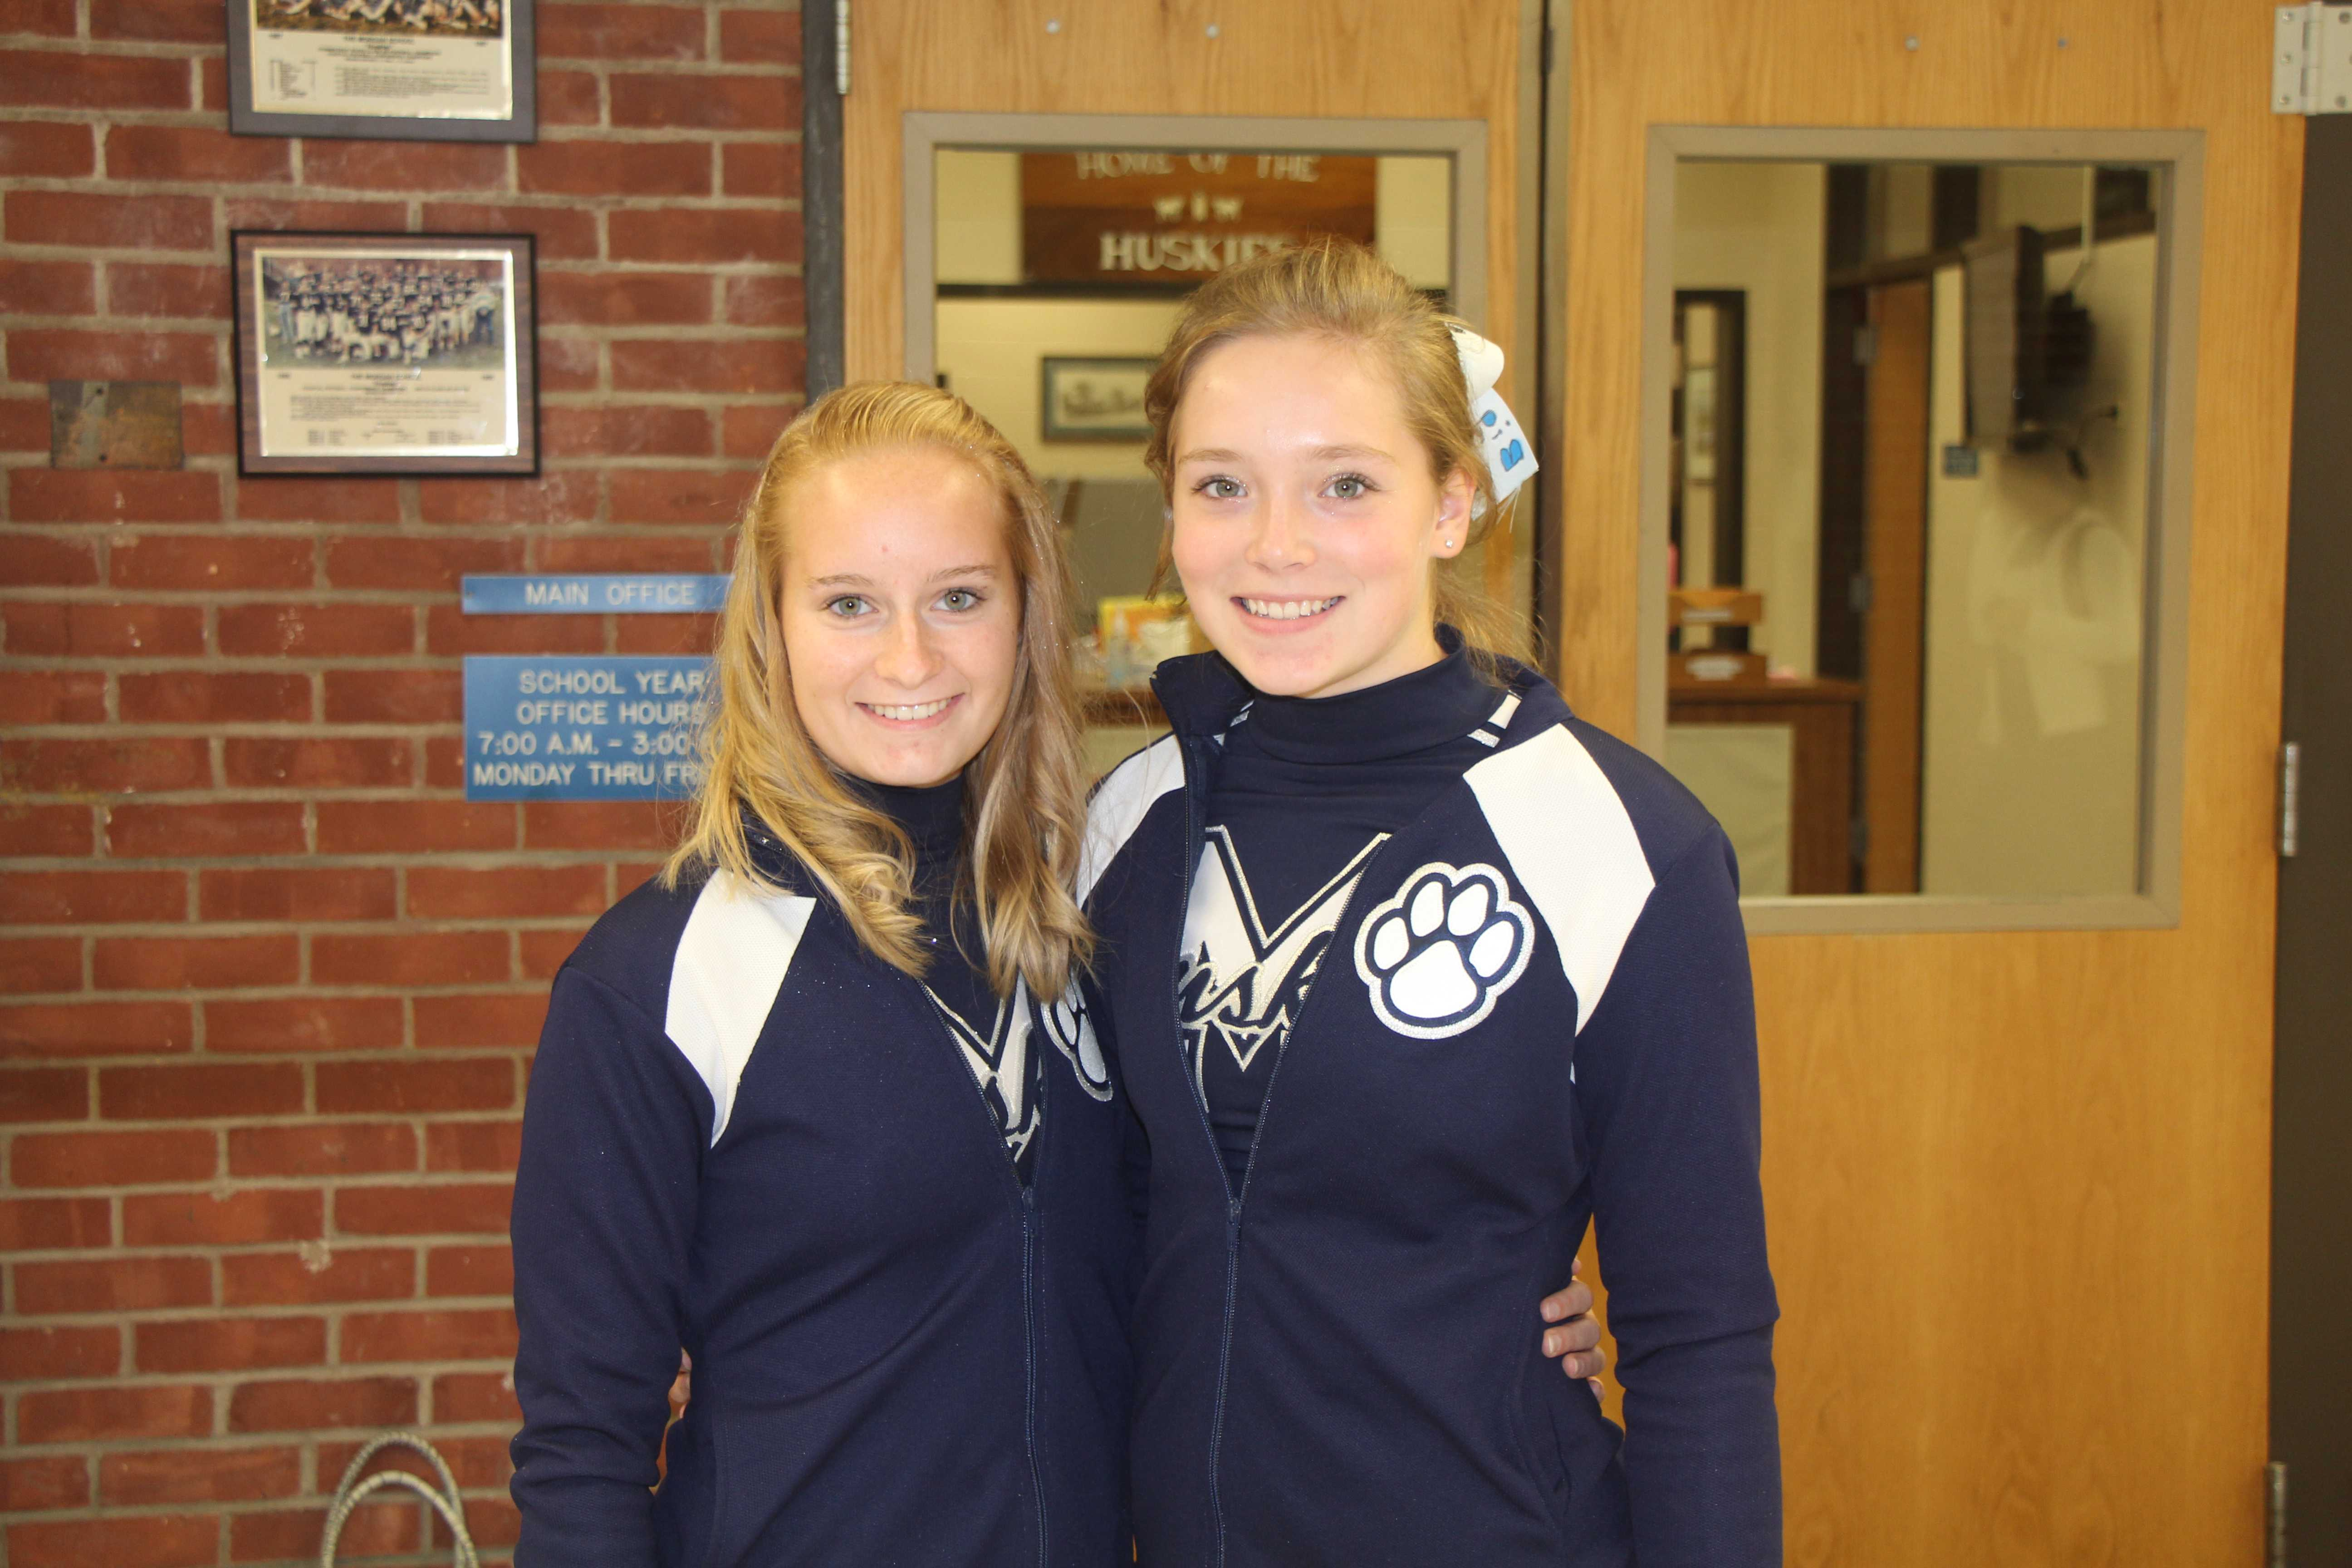 Cheer leading Captains Morgan Shaker and Katie Castello